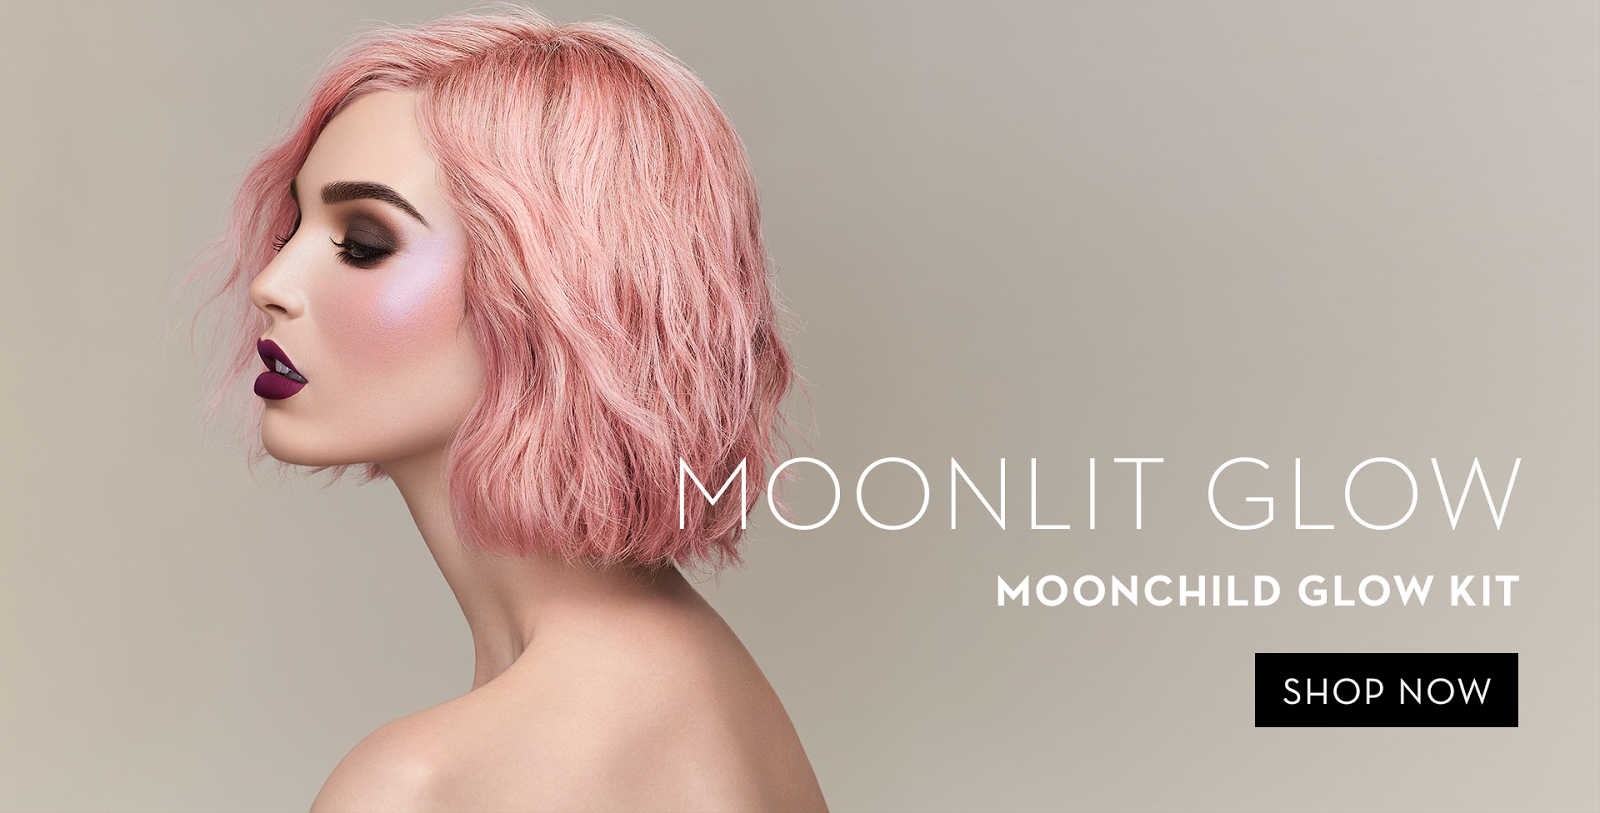 abh moonchild campaign, abh moonchild glow kit